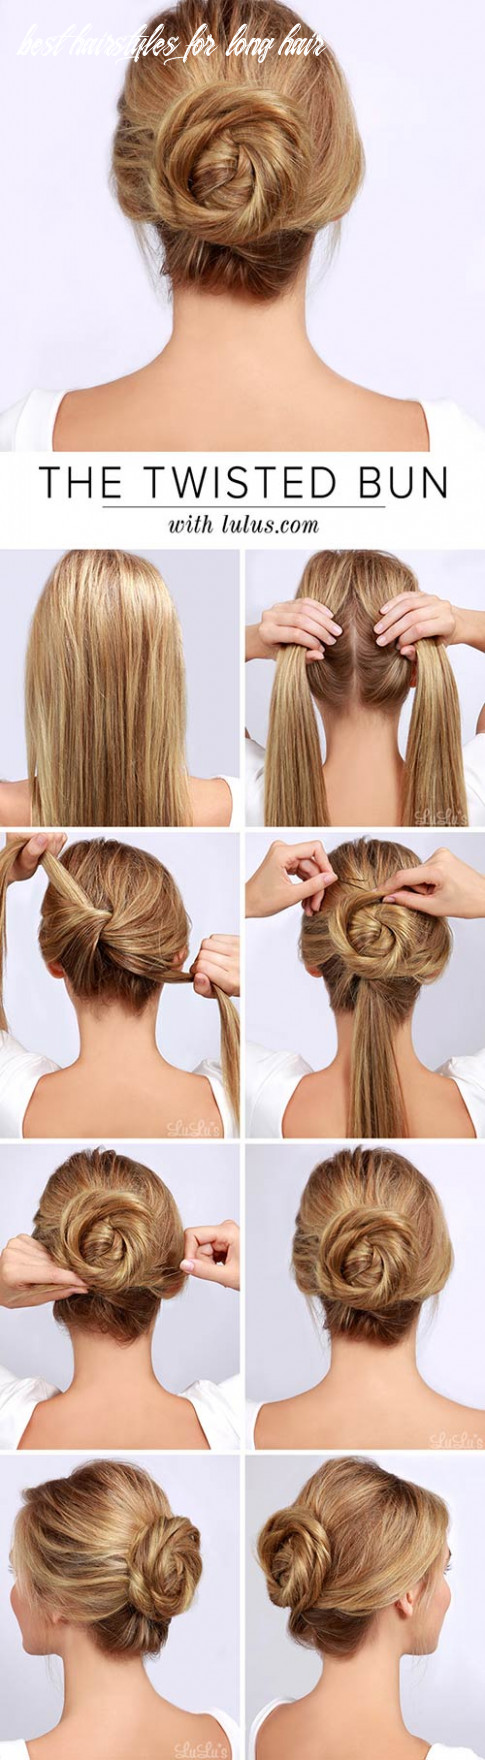 9 awesome hairstyles for girls with long hair best hairstyles for long hair